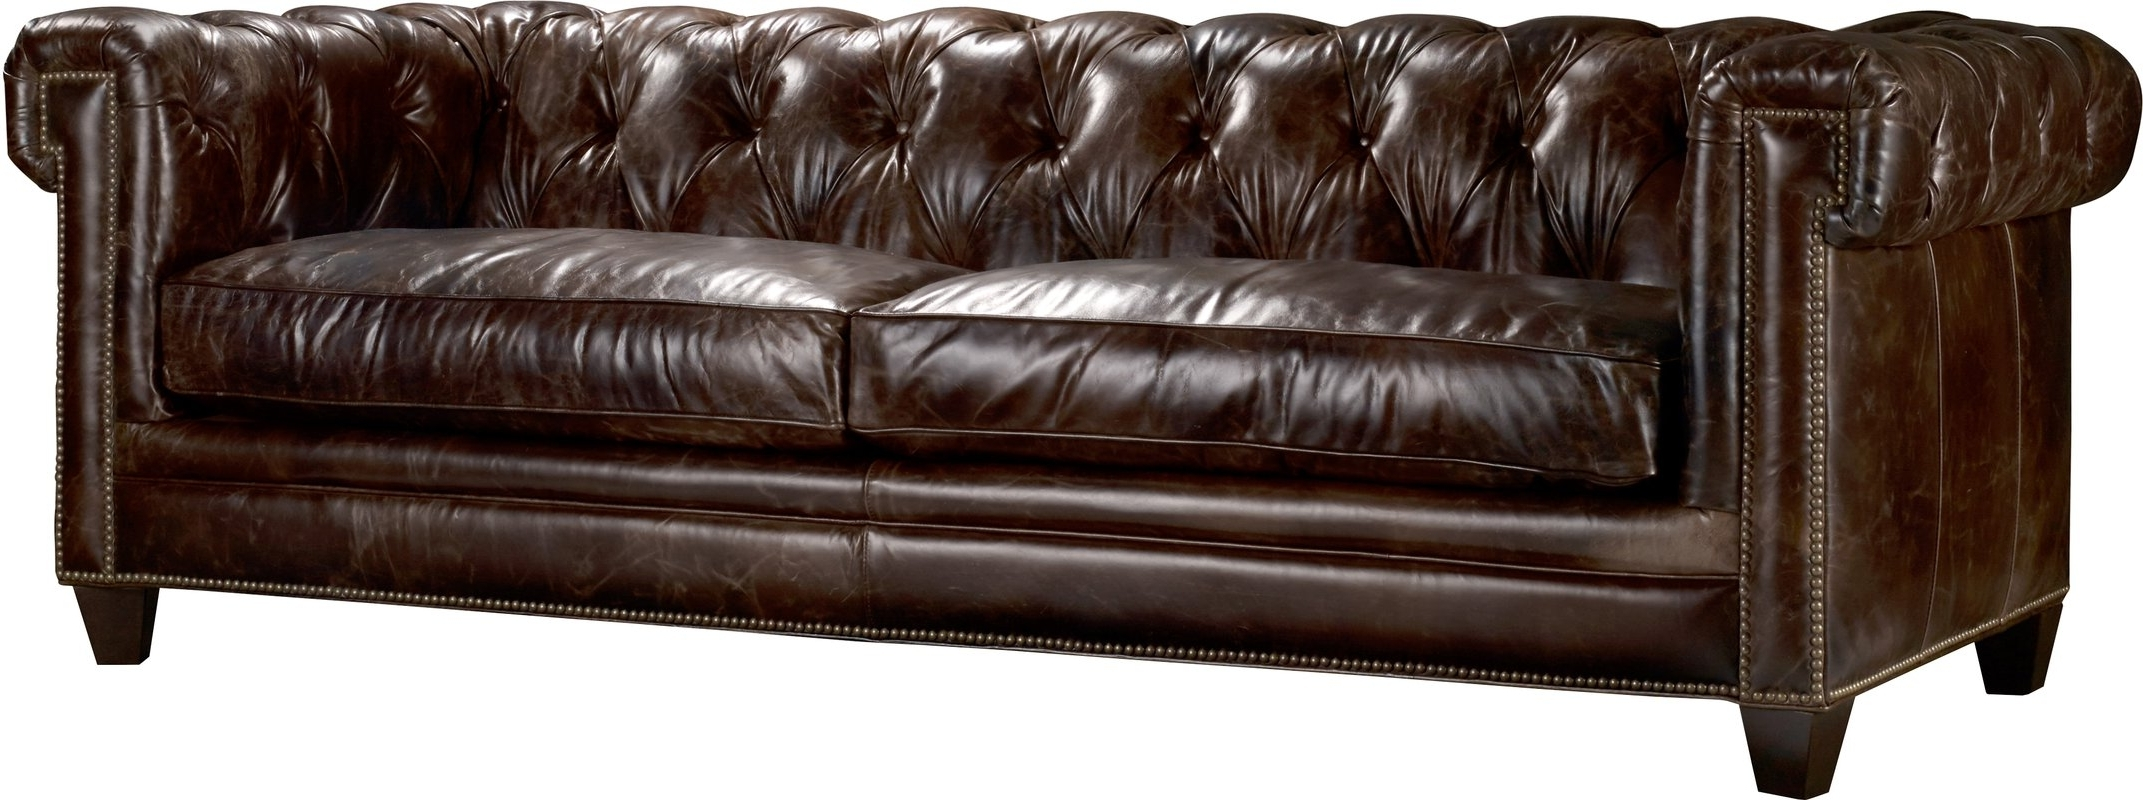 Favorite Hooker Furniture Imperial Regal Stationary Leather Chesterfield Inside Chesterfield Sofas (View 11 of 20)